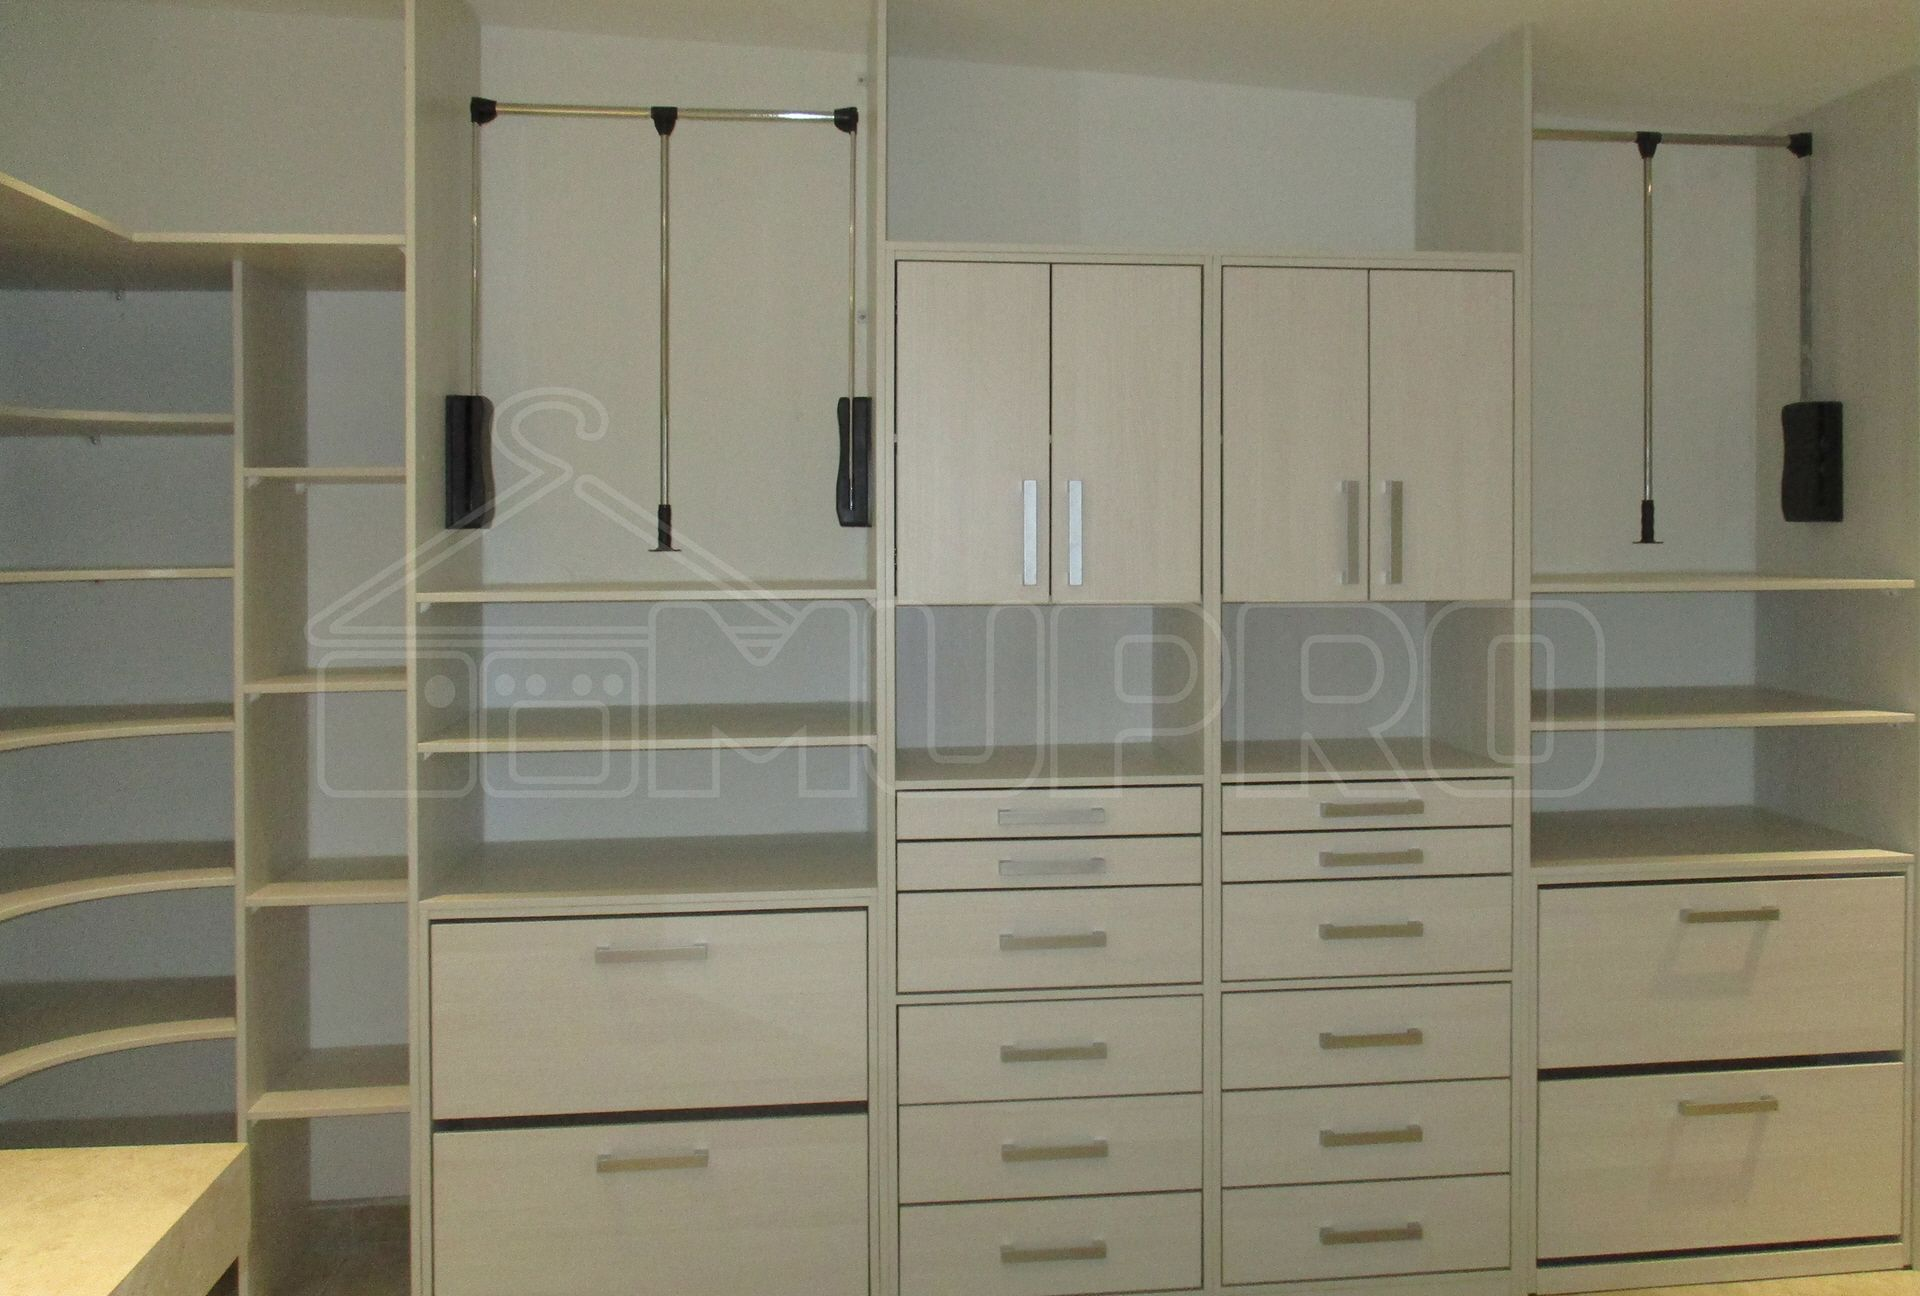 Vestidores (Walk-In-Closets)